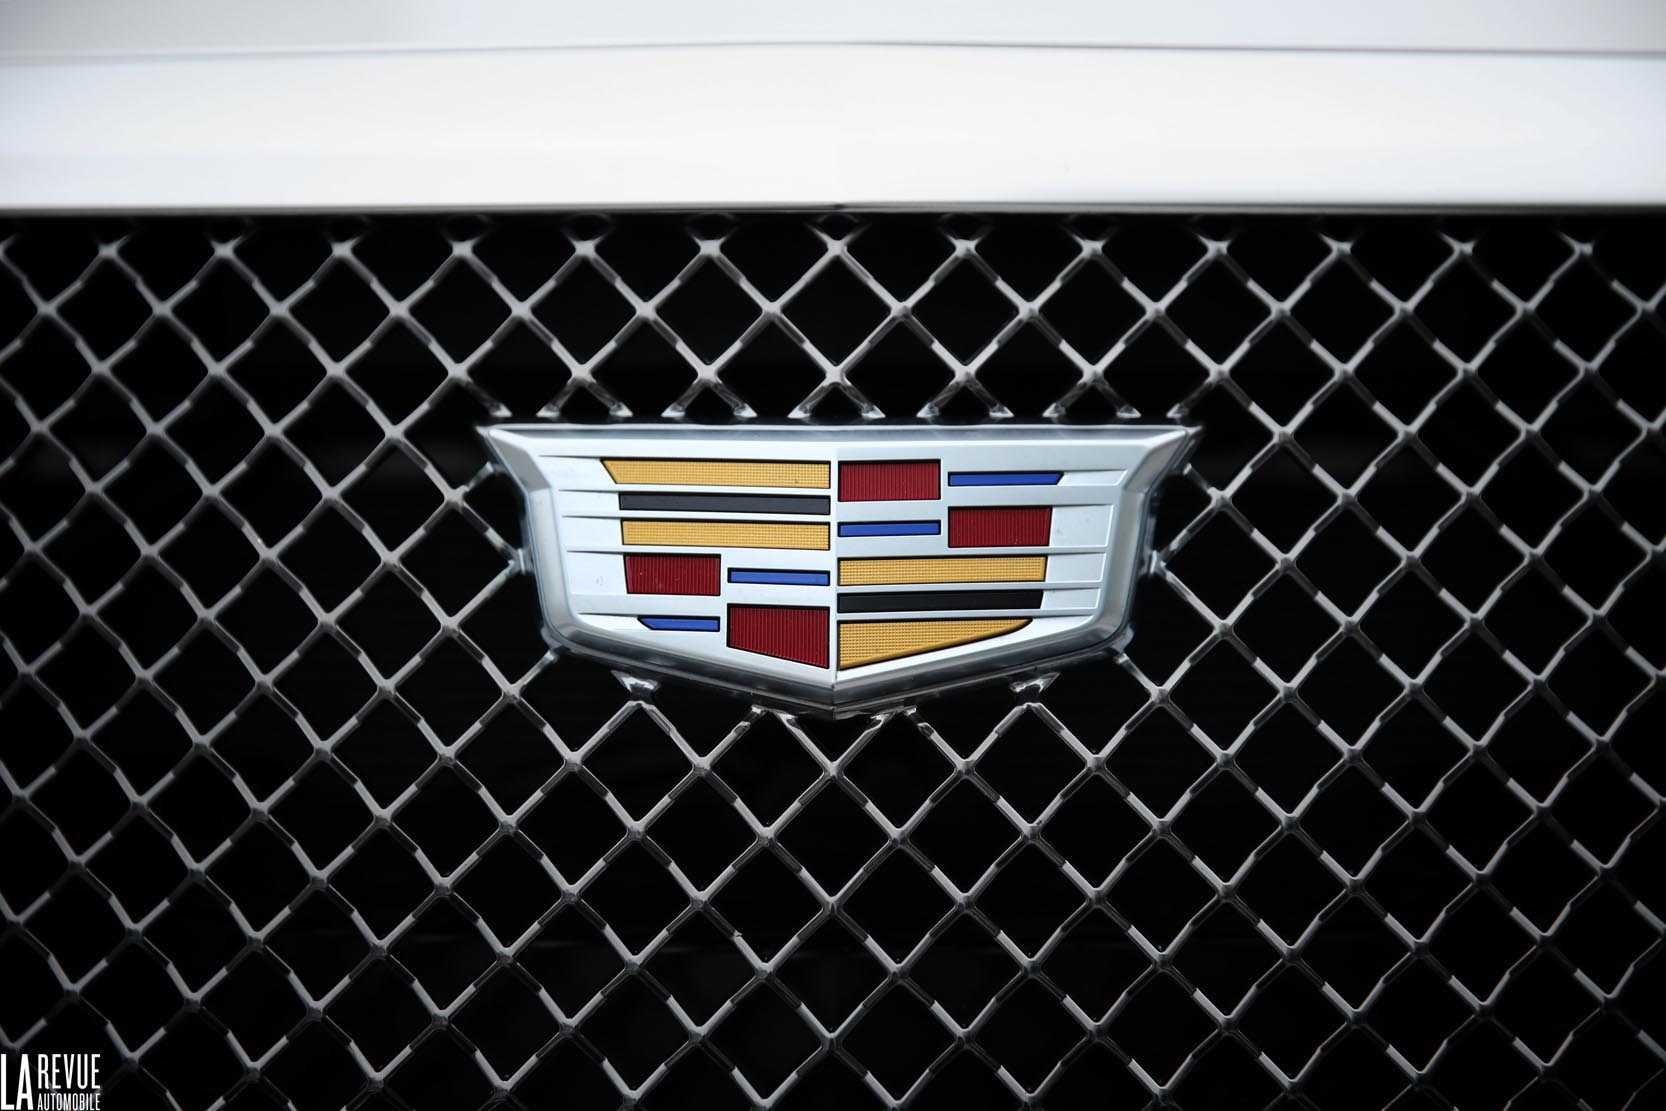 Exterieur_Cadillac-CTS-V-2015_23